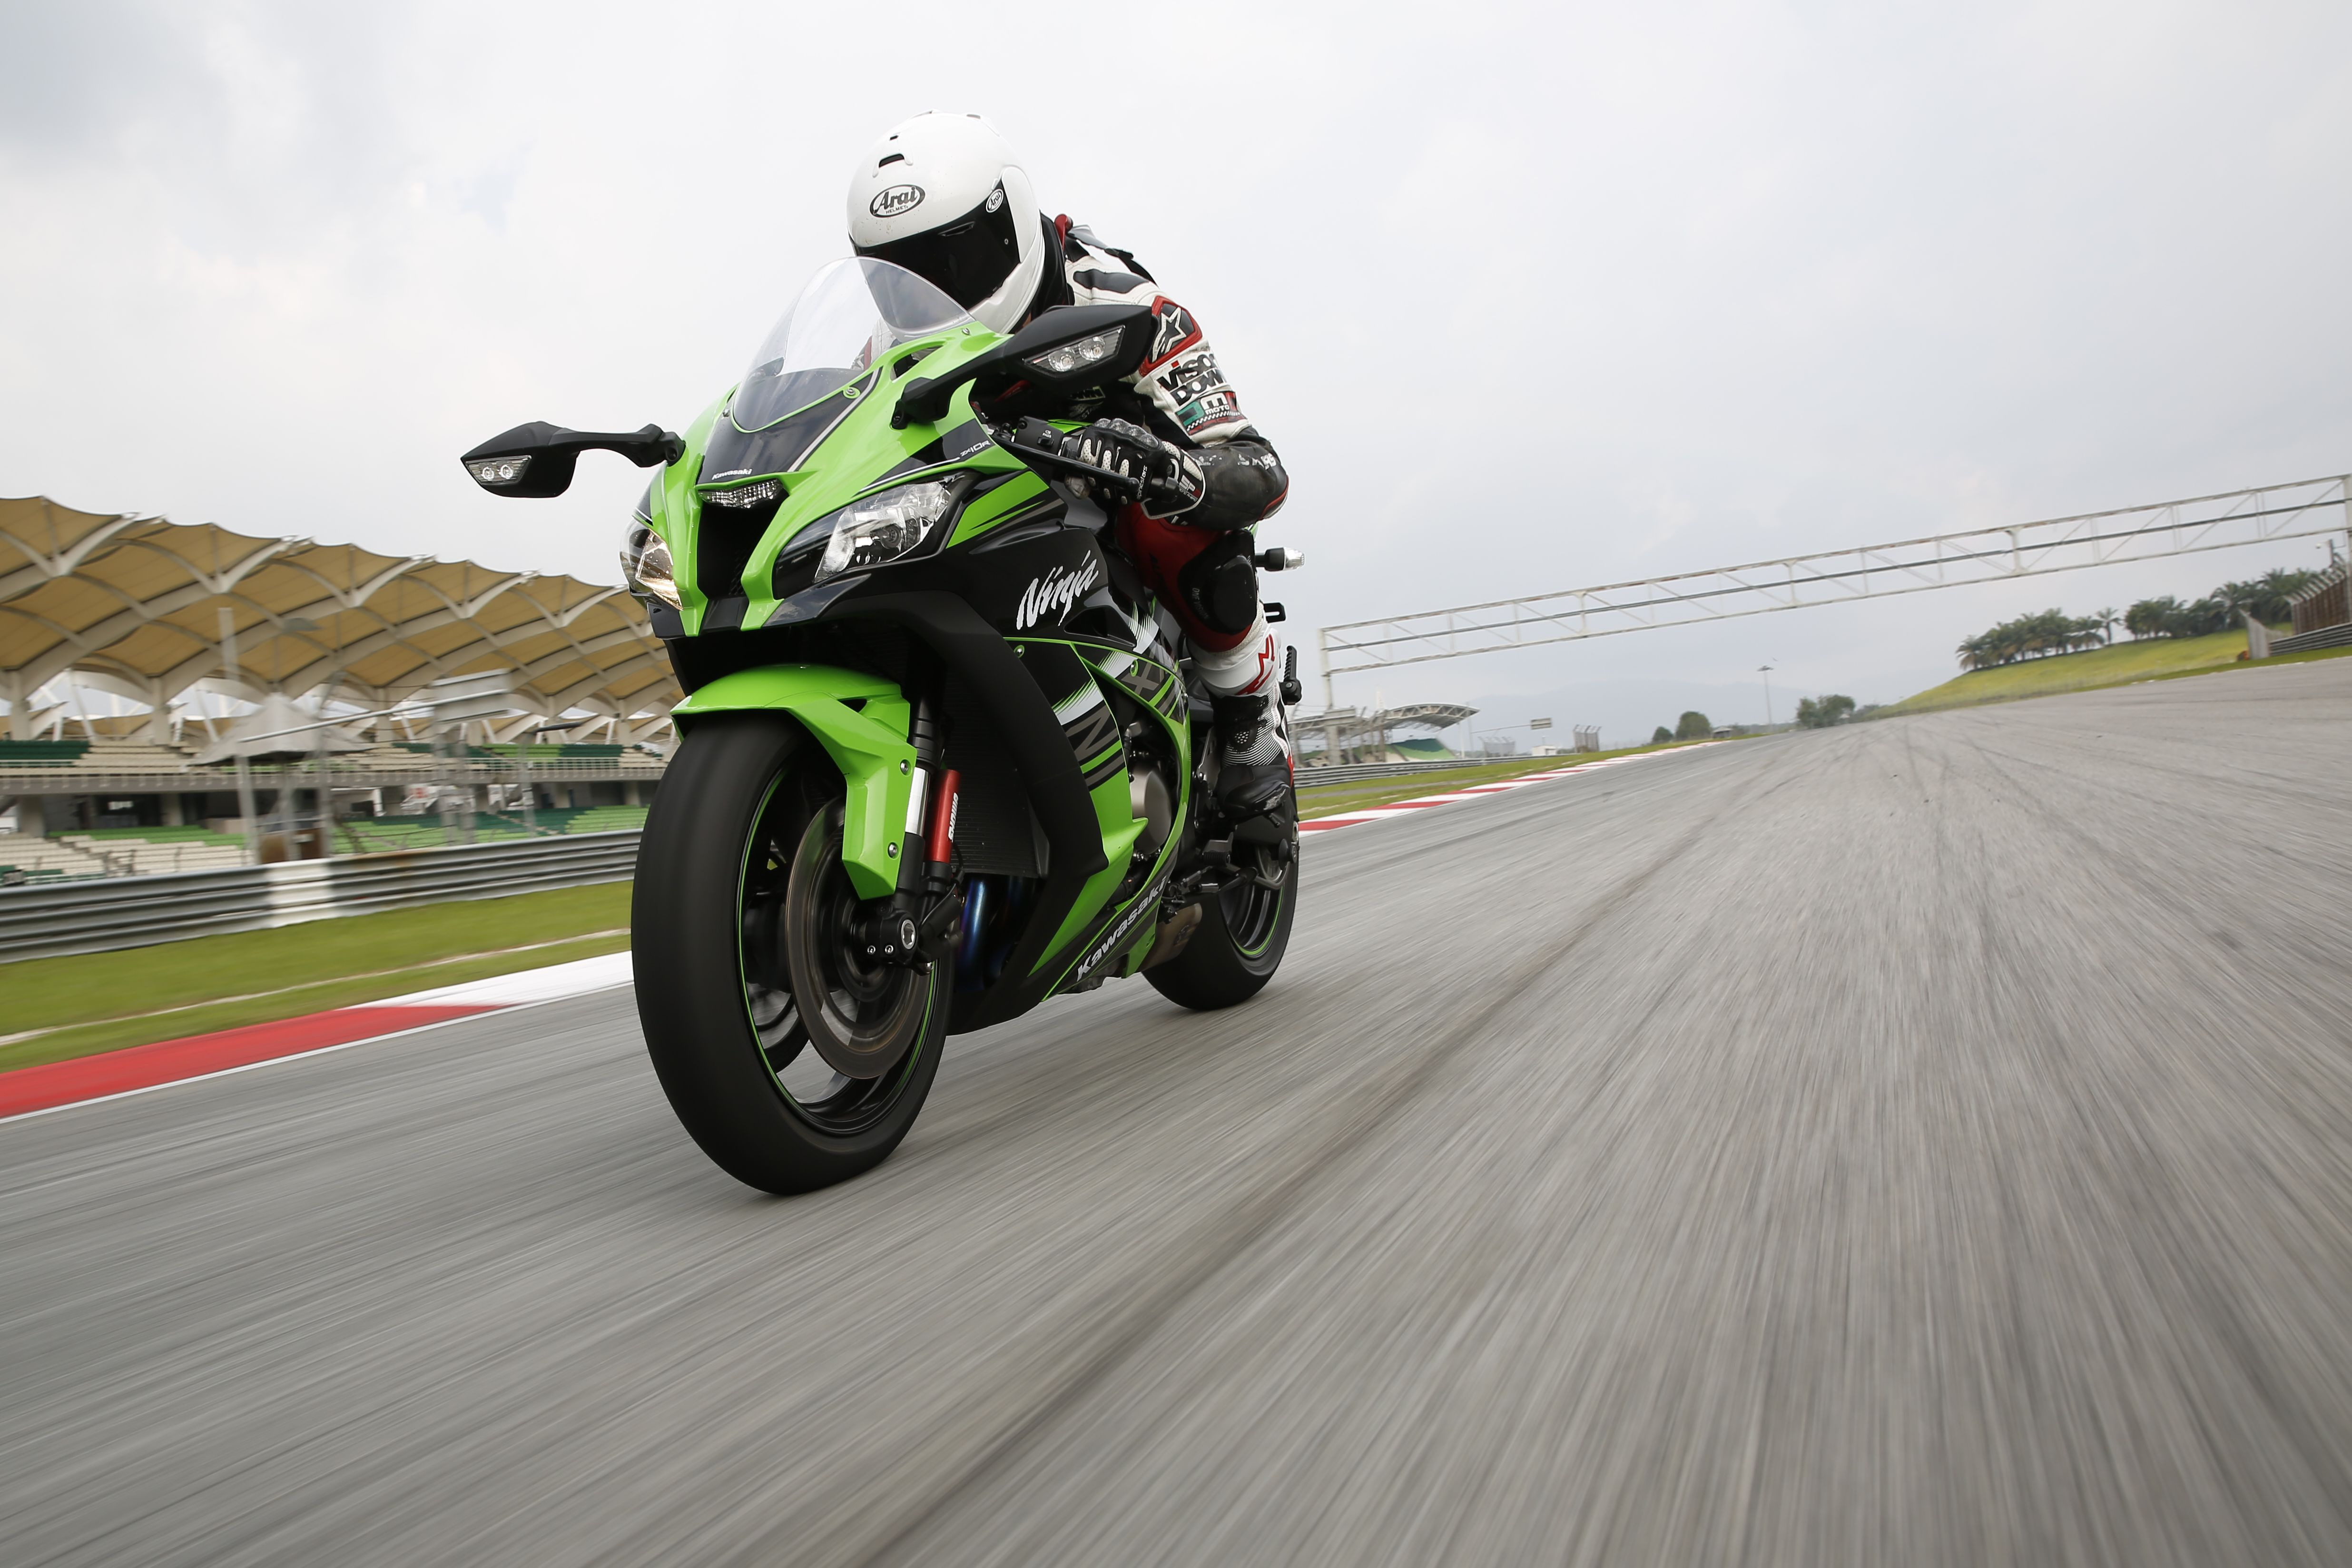 Click here for page two of our kawasaki zx 10r review the ride